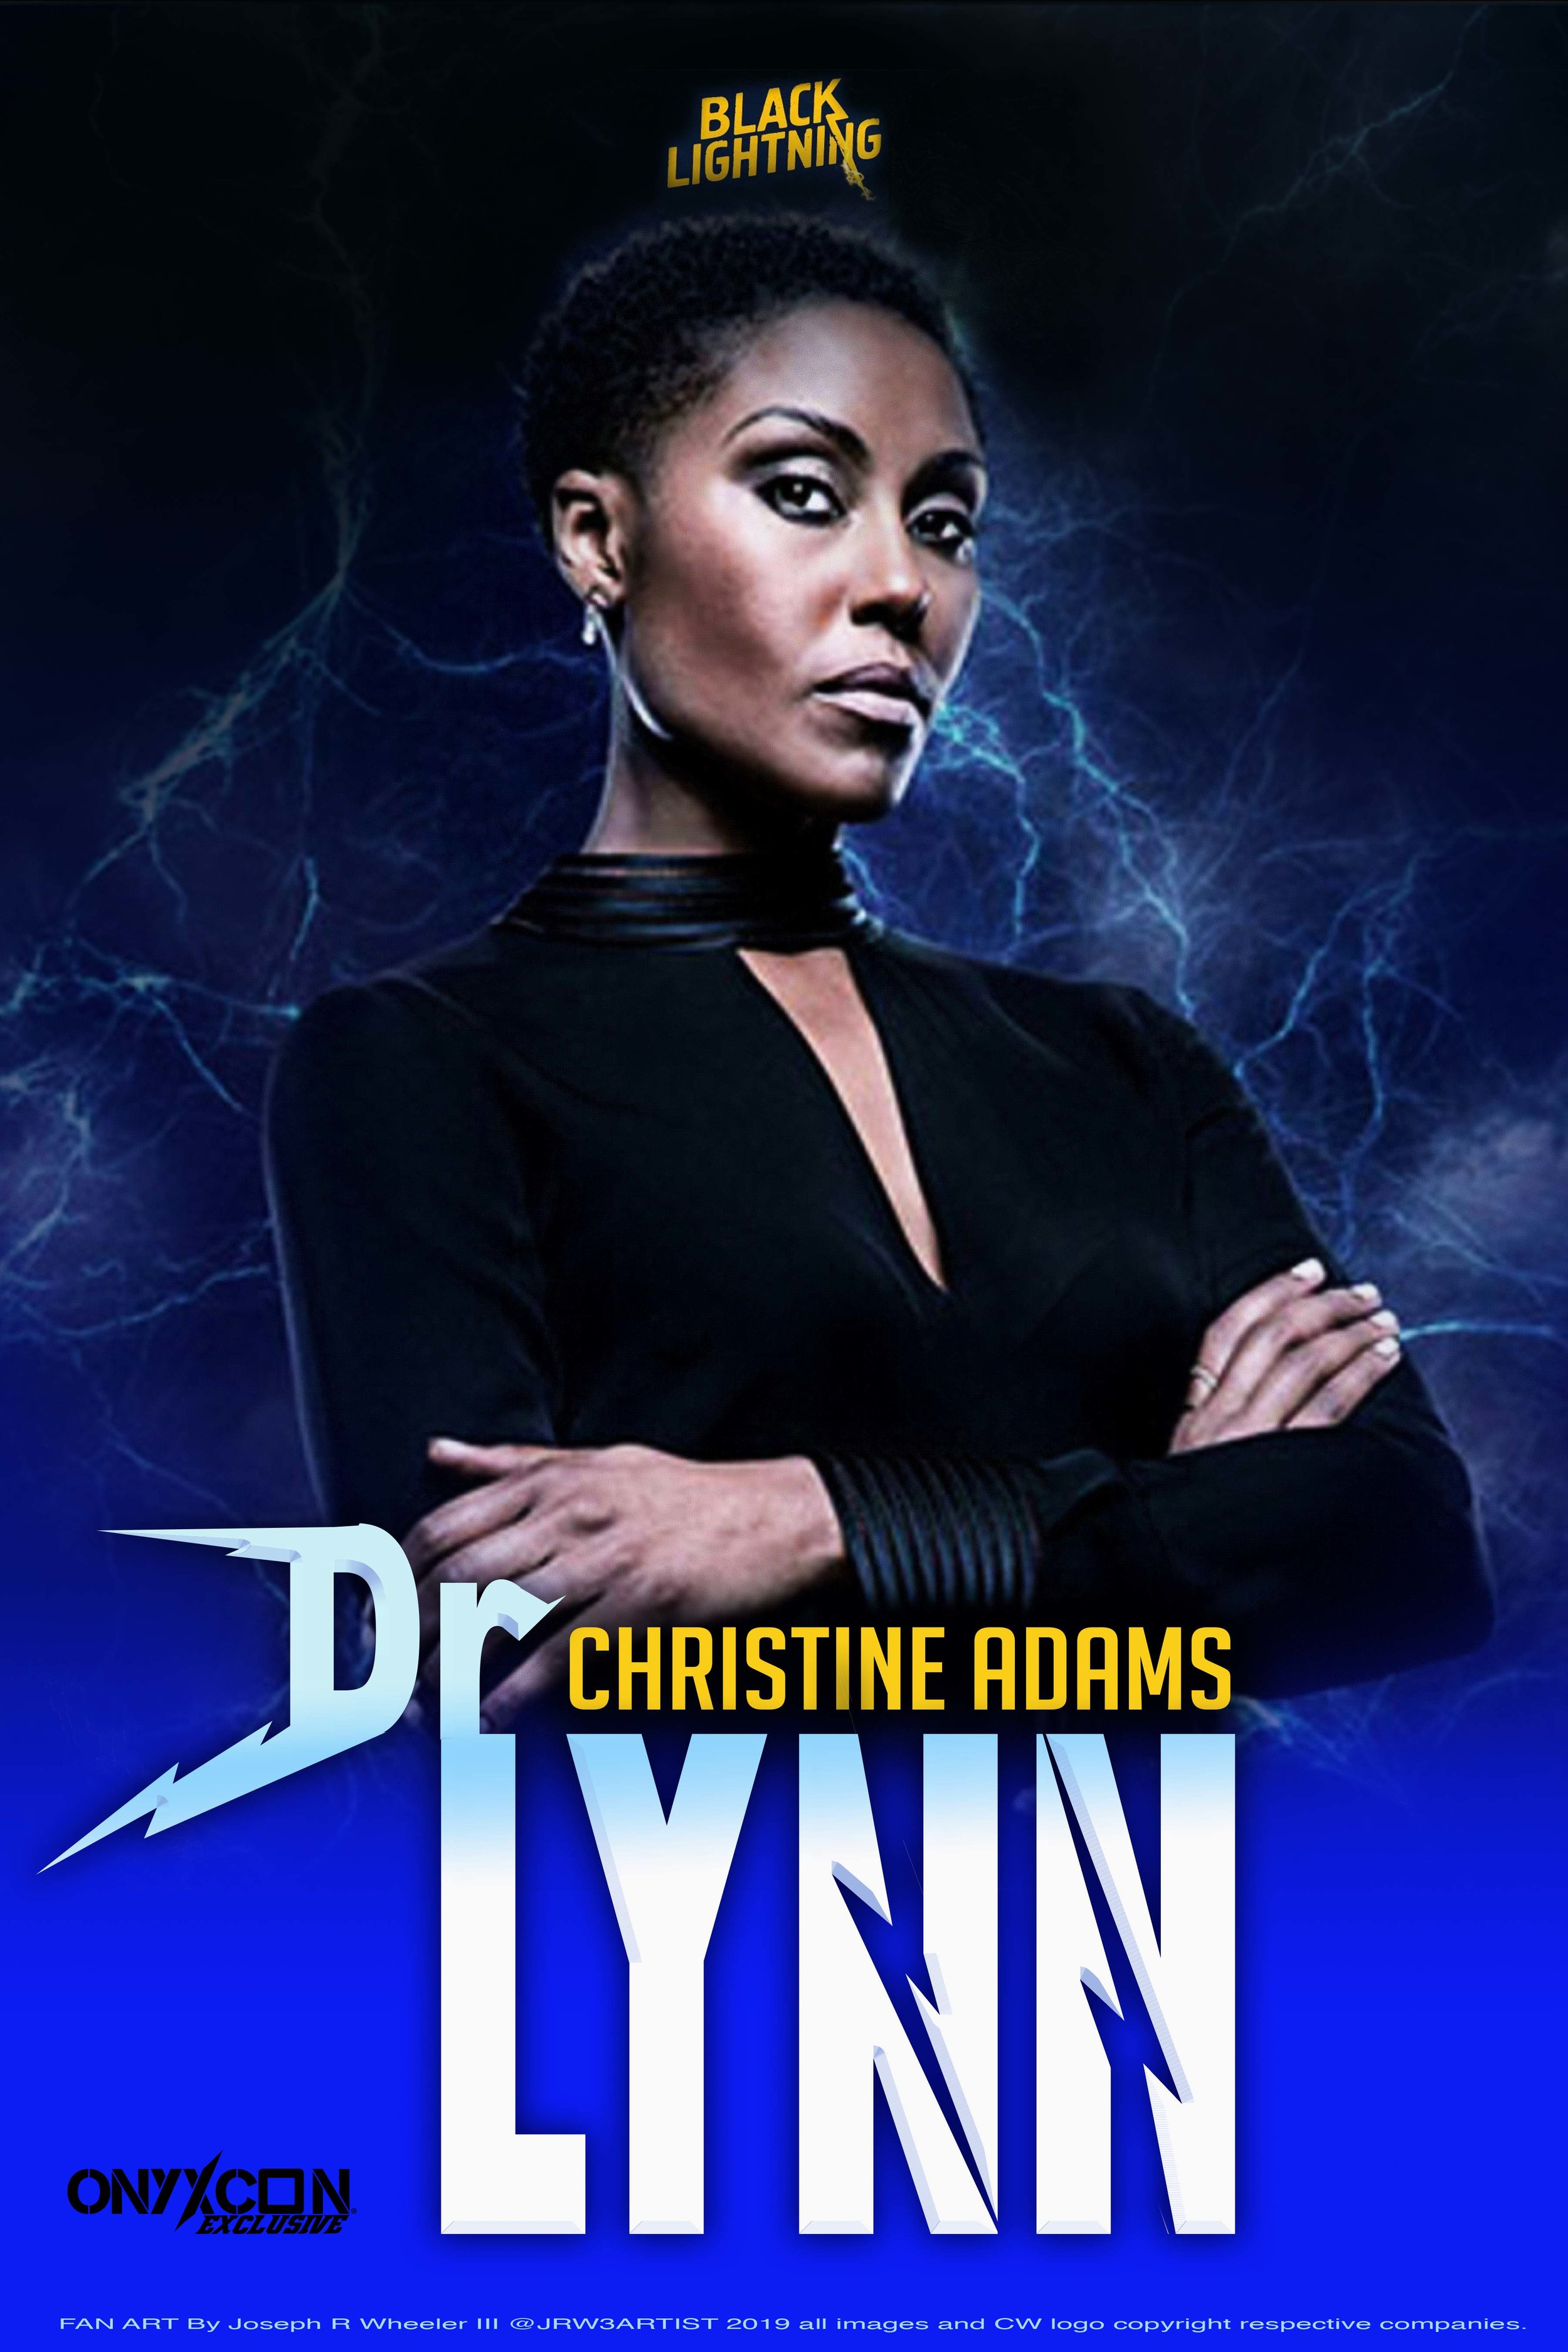 "ONYXCON XI welcomes actress CHRISTINE ADAMS ' Dr LYNN' on BLACK LIGHTNING ! AUGUST 24th! Come meet this gorgeous and talented legendary thespian at ONYXCON!  Film and television actress Christine Adams was born in London, United Kingdom.  She starred on several British and American films and television series since early 2000s.  On television, she is known for roles as ""Katherine Williams Osgood"" on the British miniseries, NY-LON (2004); ""Simone Hundin"" on the American comedy-drama series, Pushing Daisies (2007) (2007-2009); as ""Lena Boudreaux"" on the short-lived ABC legal drama series, The Whole Truth (2010); and as ""Mira"" in FOX's science-fiction drama series, Terra Nova (2011).In 2012, she starred, opposite Anthony LaPaglia, on the ABC drama series, Americana (2012). Adams appeared on several films, such as Submerged (2005), Batman Begins (2005), Eye of the Dolphin (2006), Green Flash (2008), Beneath the Blue (2010), TRON: Legacy (2010) and The Girl with the Dragon Tattoo (2011). She resides in Los Angeles with her husband and daughter. - from her IMDB  YOU WILL KNOW HER FROM 'BLACK LIGHTNING ' as DR LYNN PIERCE !  Come meet Christine Adams at ONYXCON- AUGUST 24th!"